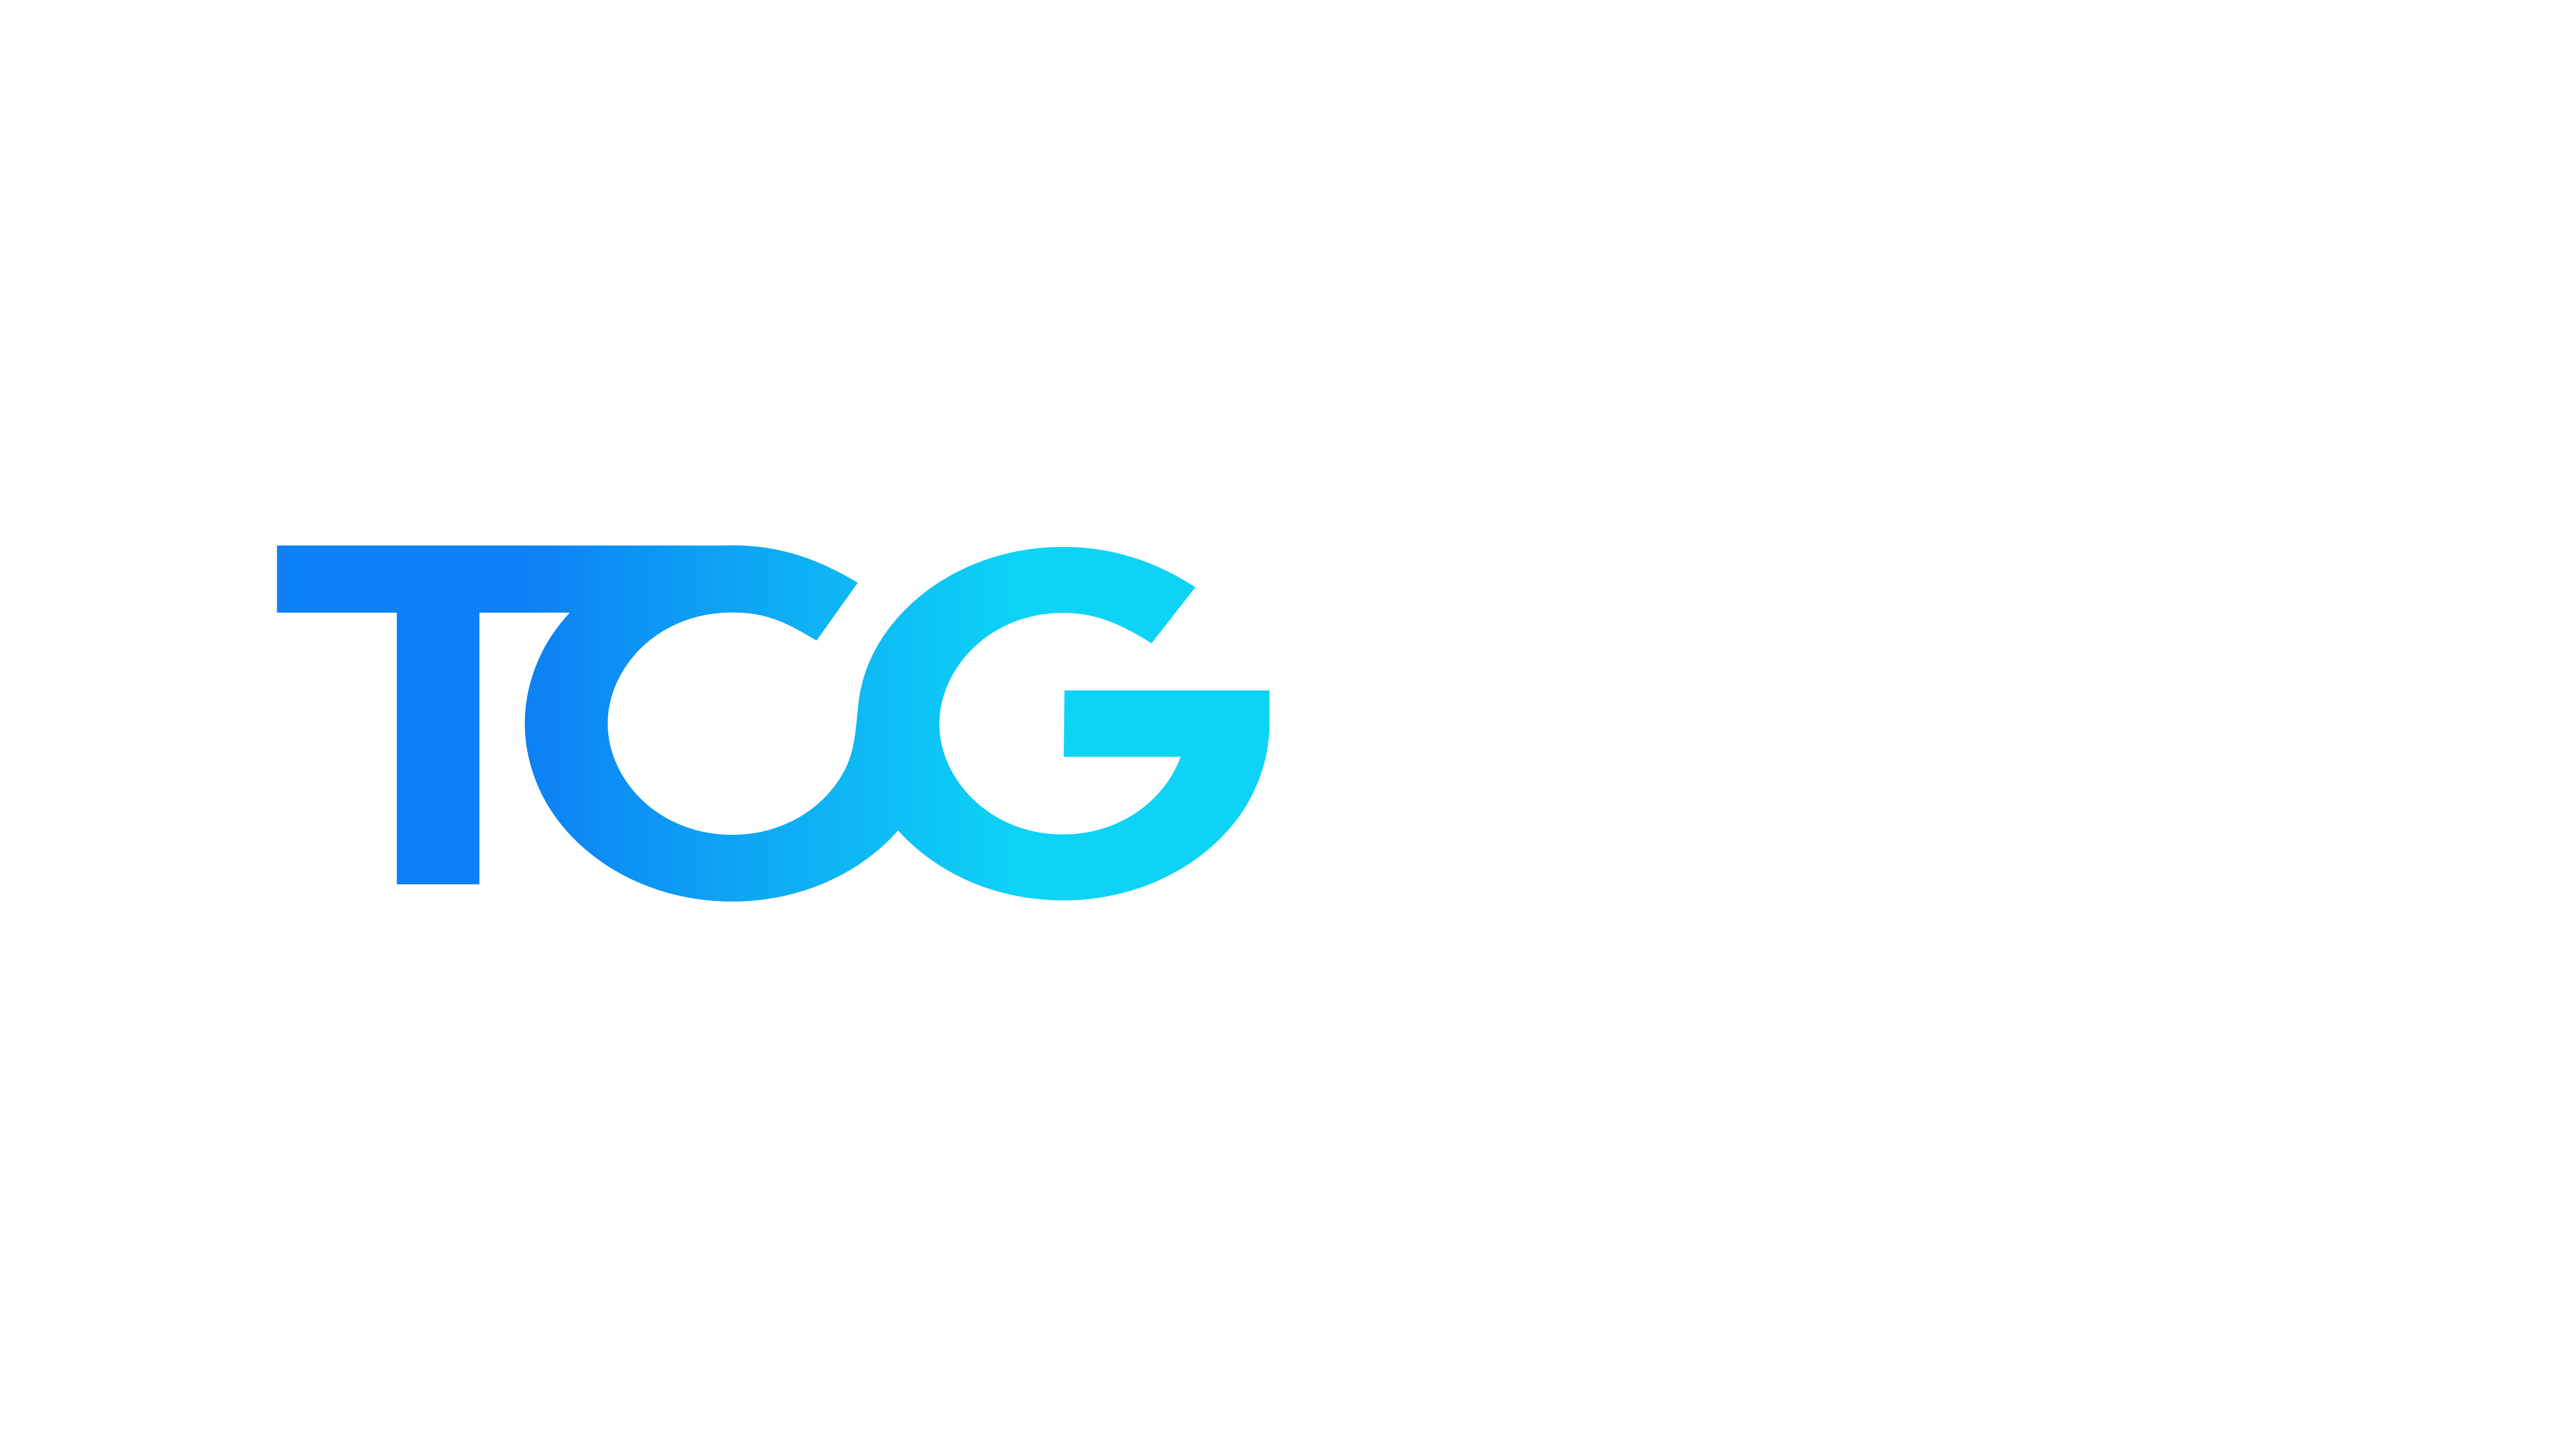 Tolbert Consulting Group